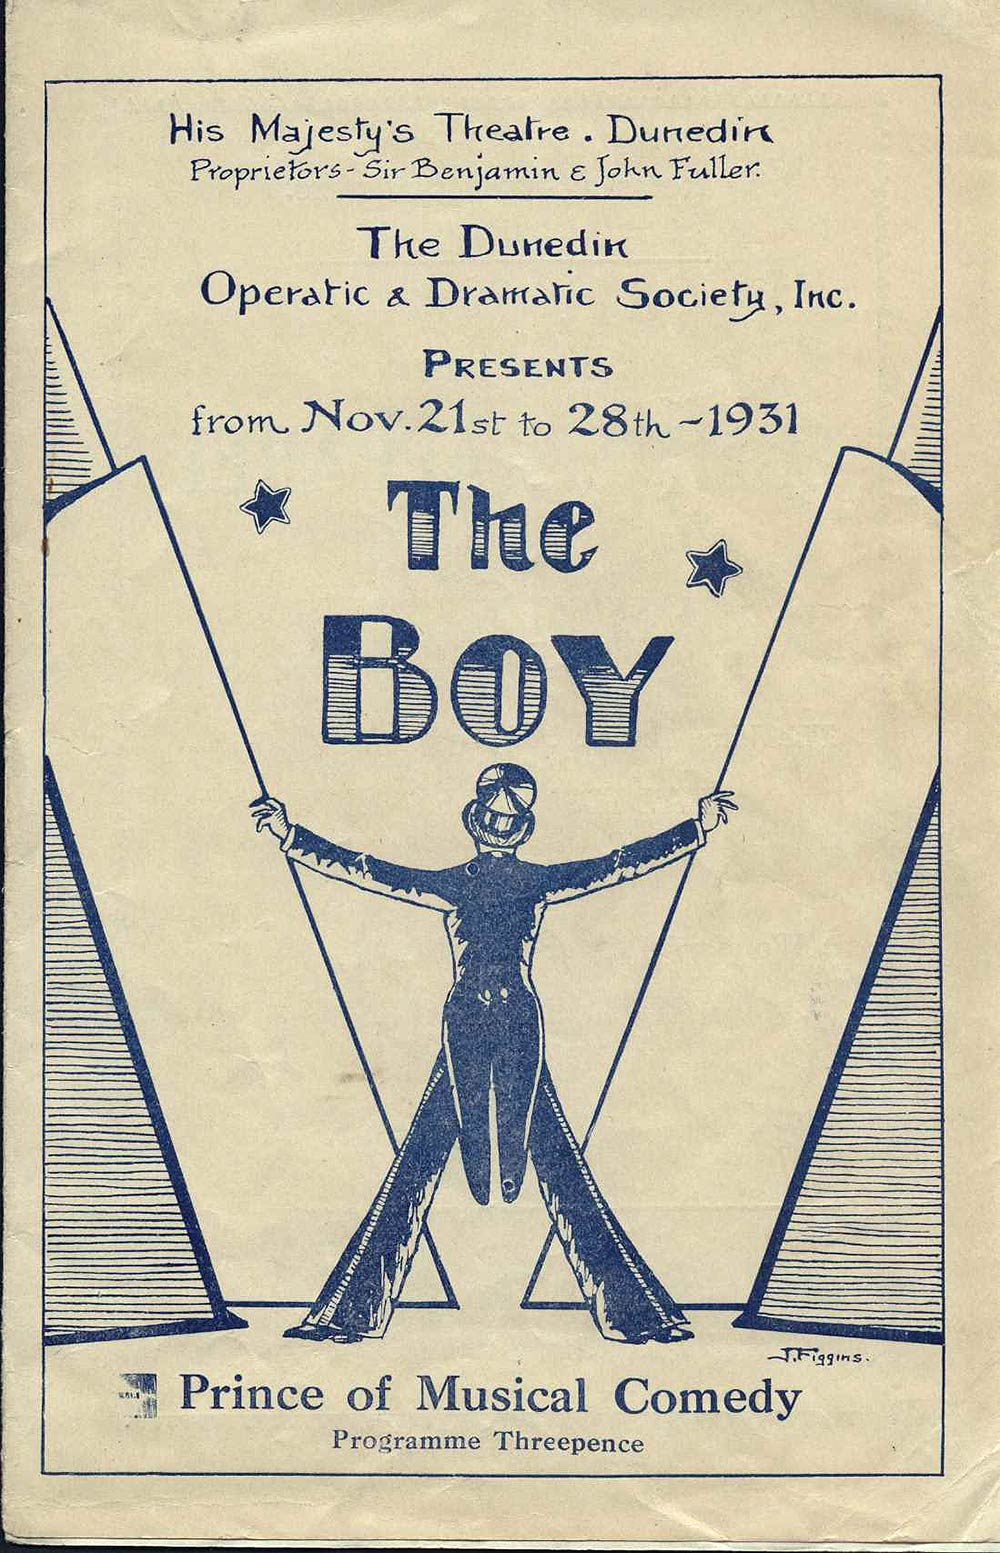 <em>The boy</em>. Book by Fred Thompson and Percy Greenbank; lyrics by Lionel Monckton and Adrian Ross; music by Lionel Monckton and Howard Talbot. (Dunedin Operatic & Dramatic Society). His Majesty's Theatre, Dunedin, Nov. 21-28, 1931.